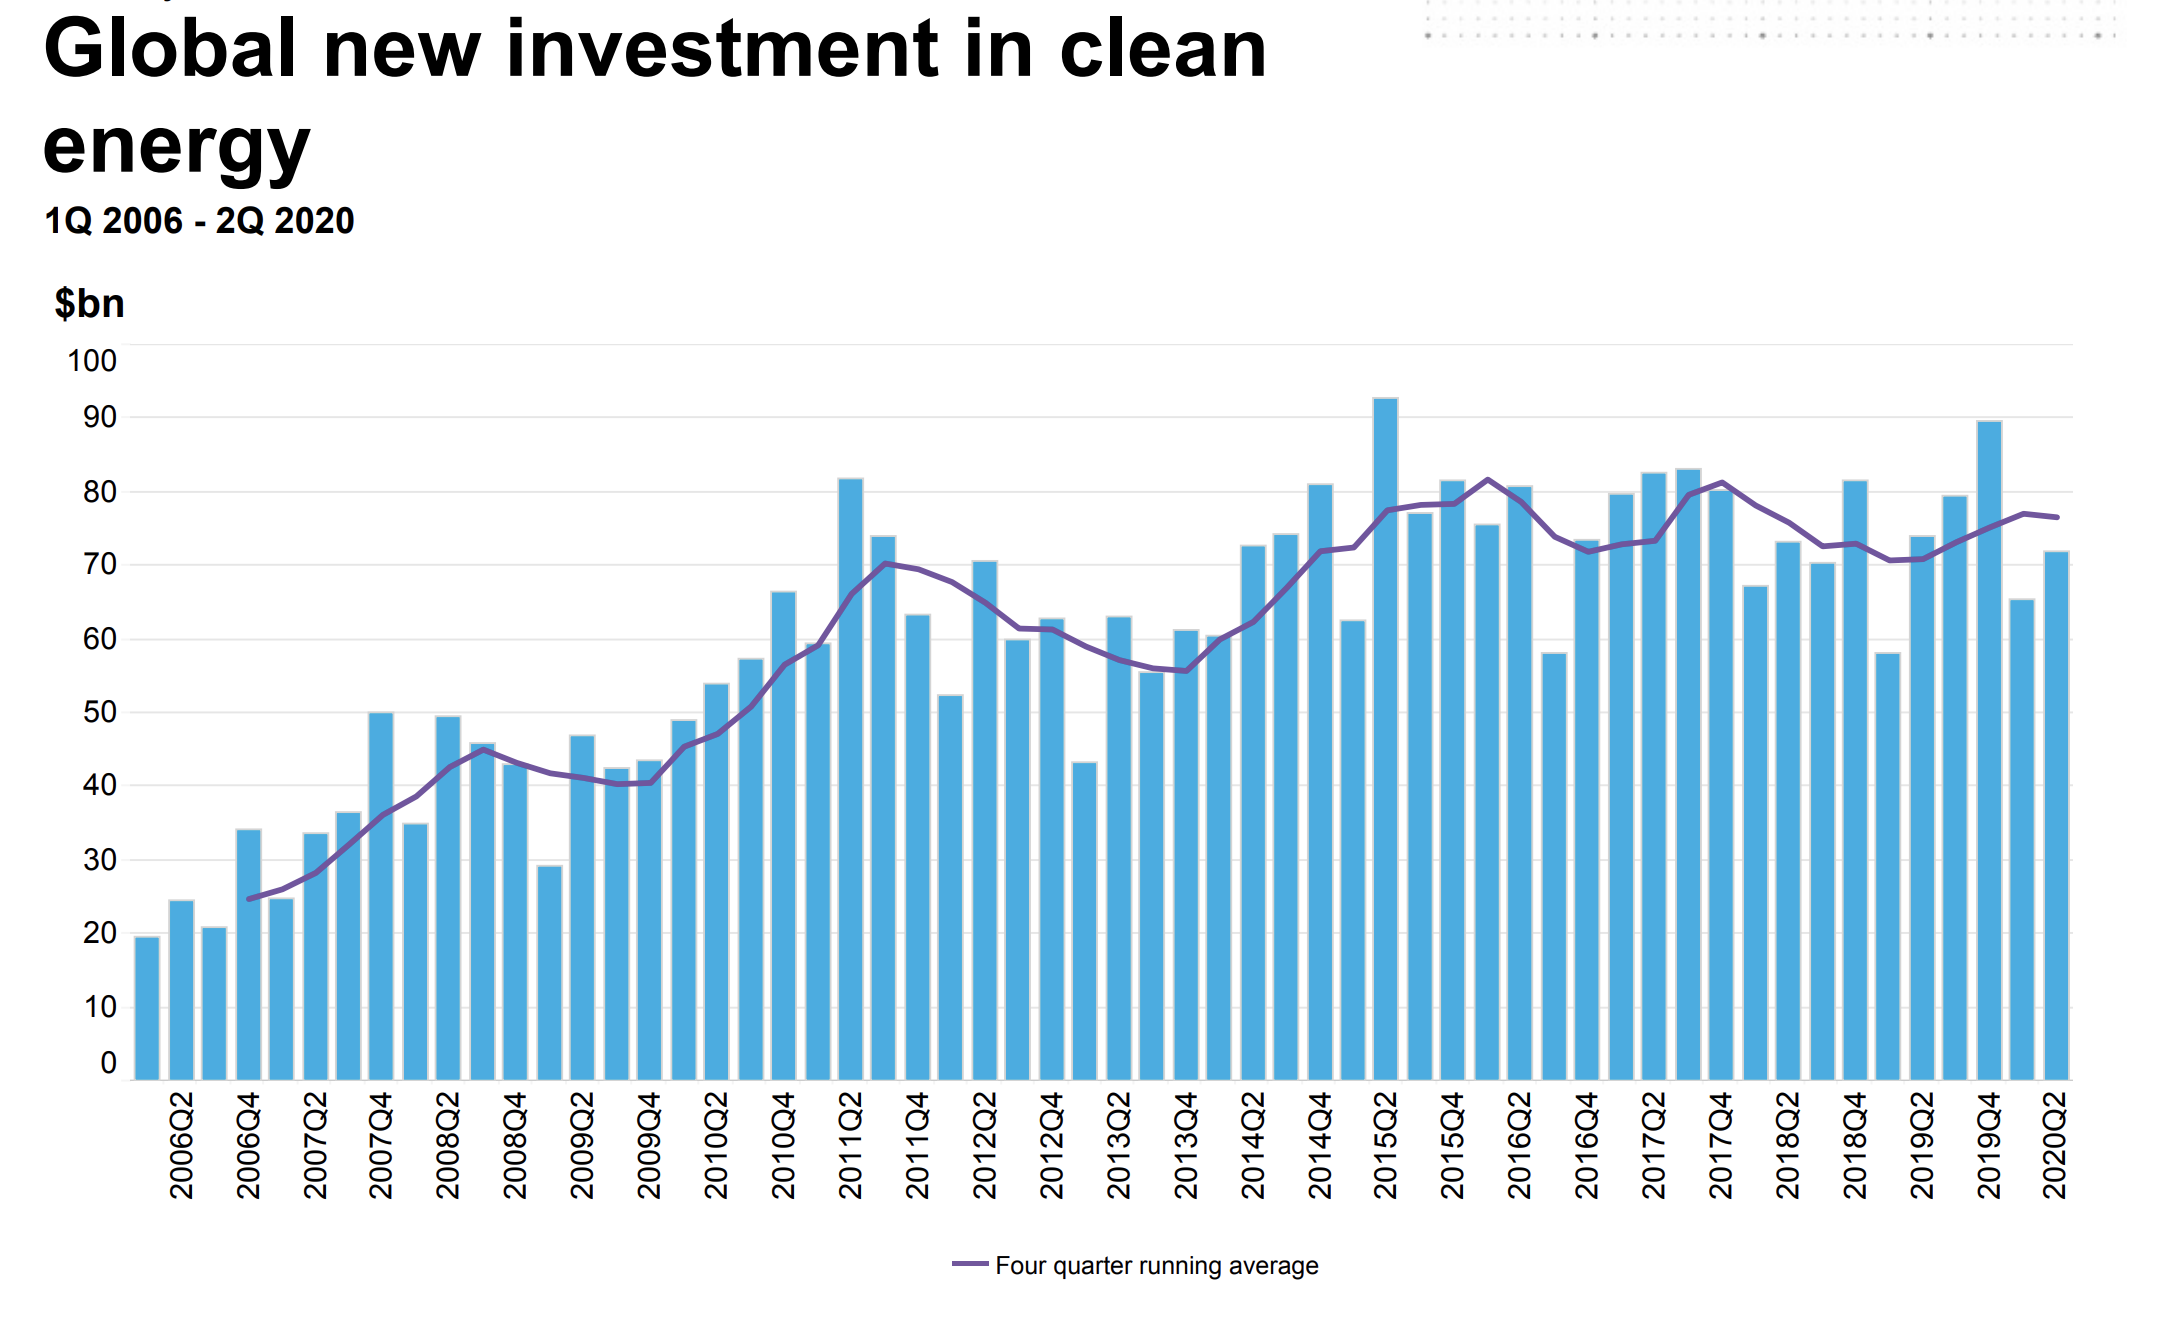 New investments in clean energy over the past 14 years have flattened